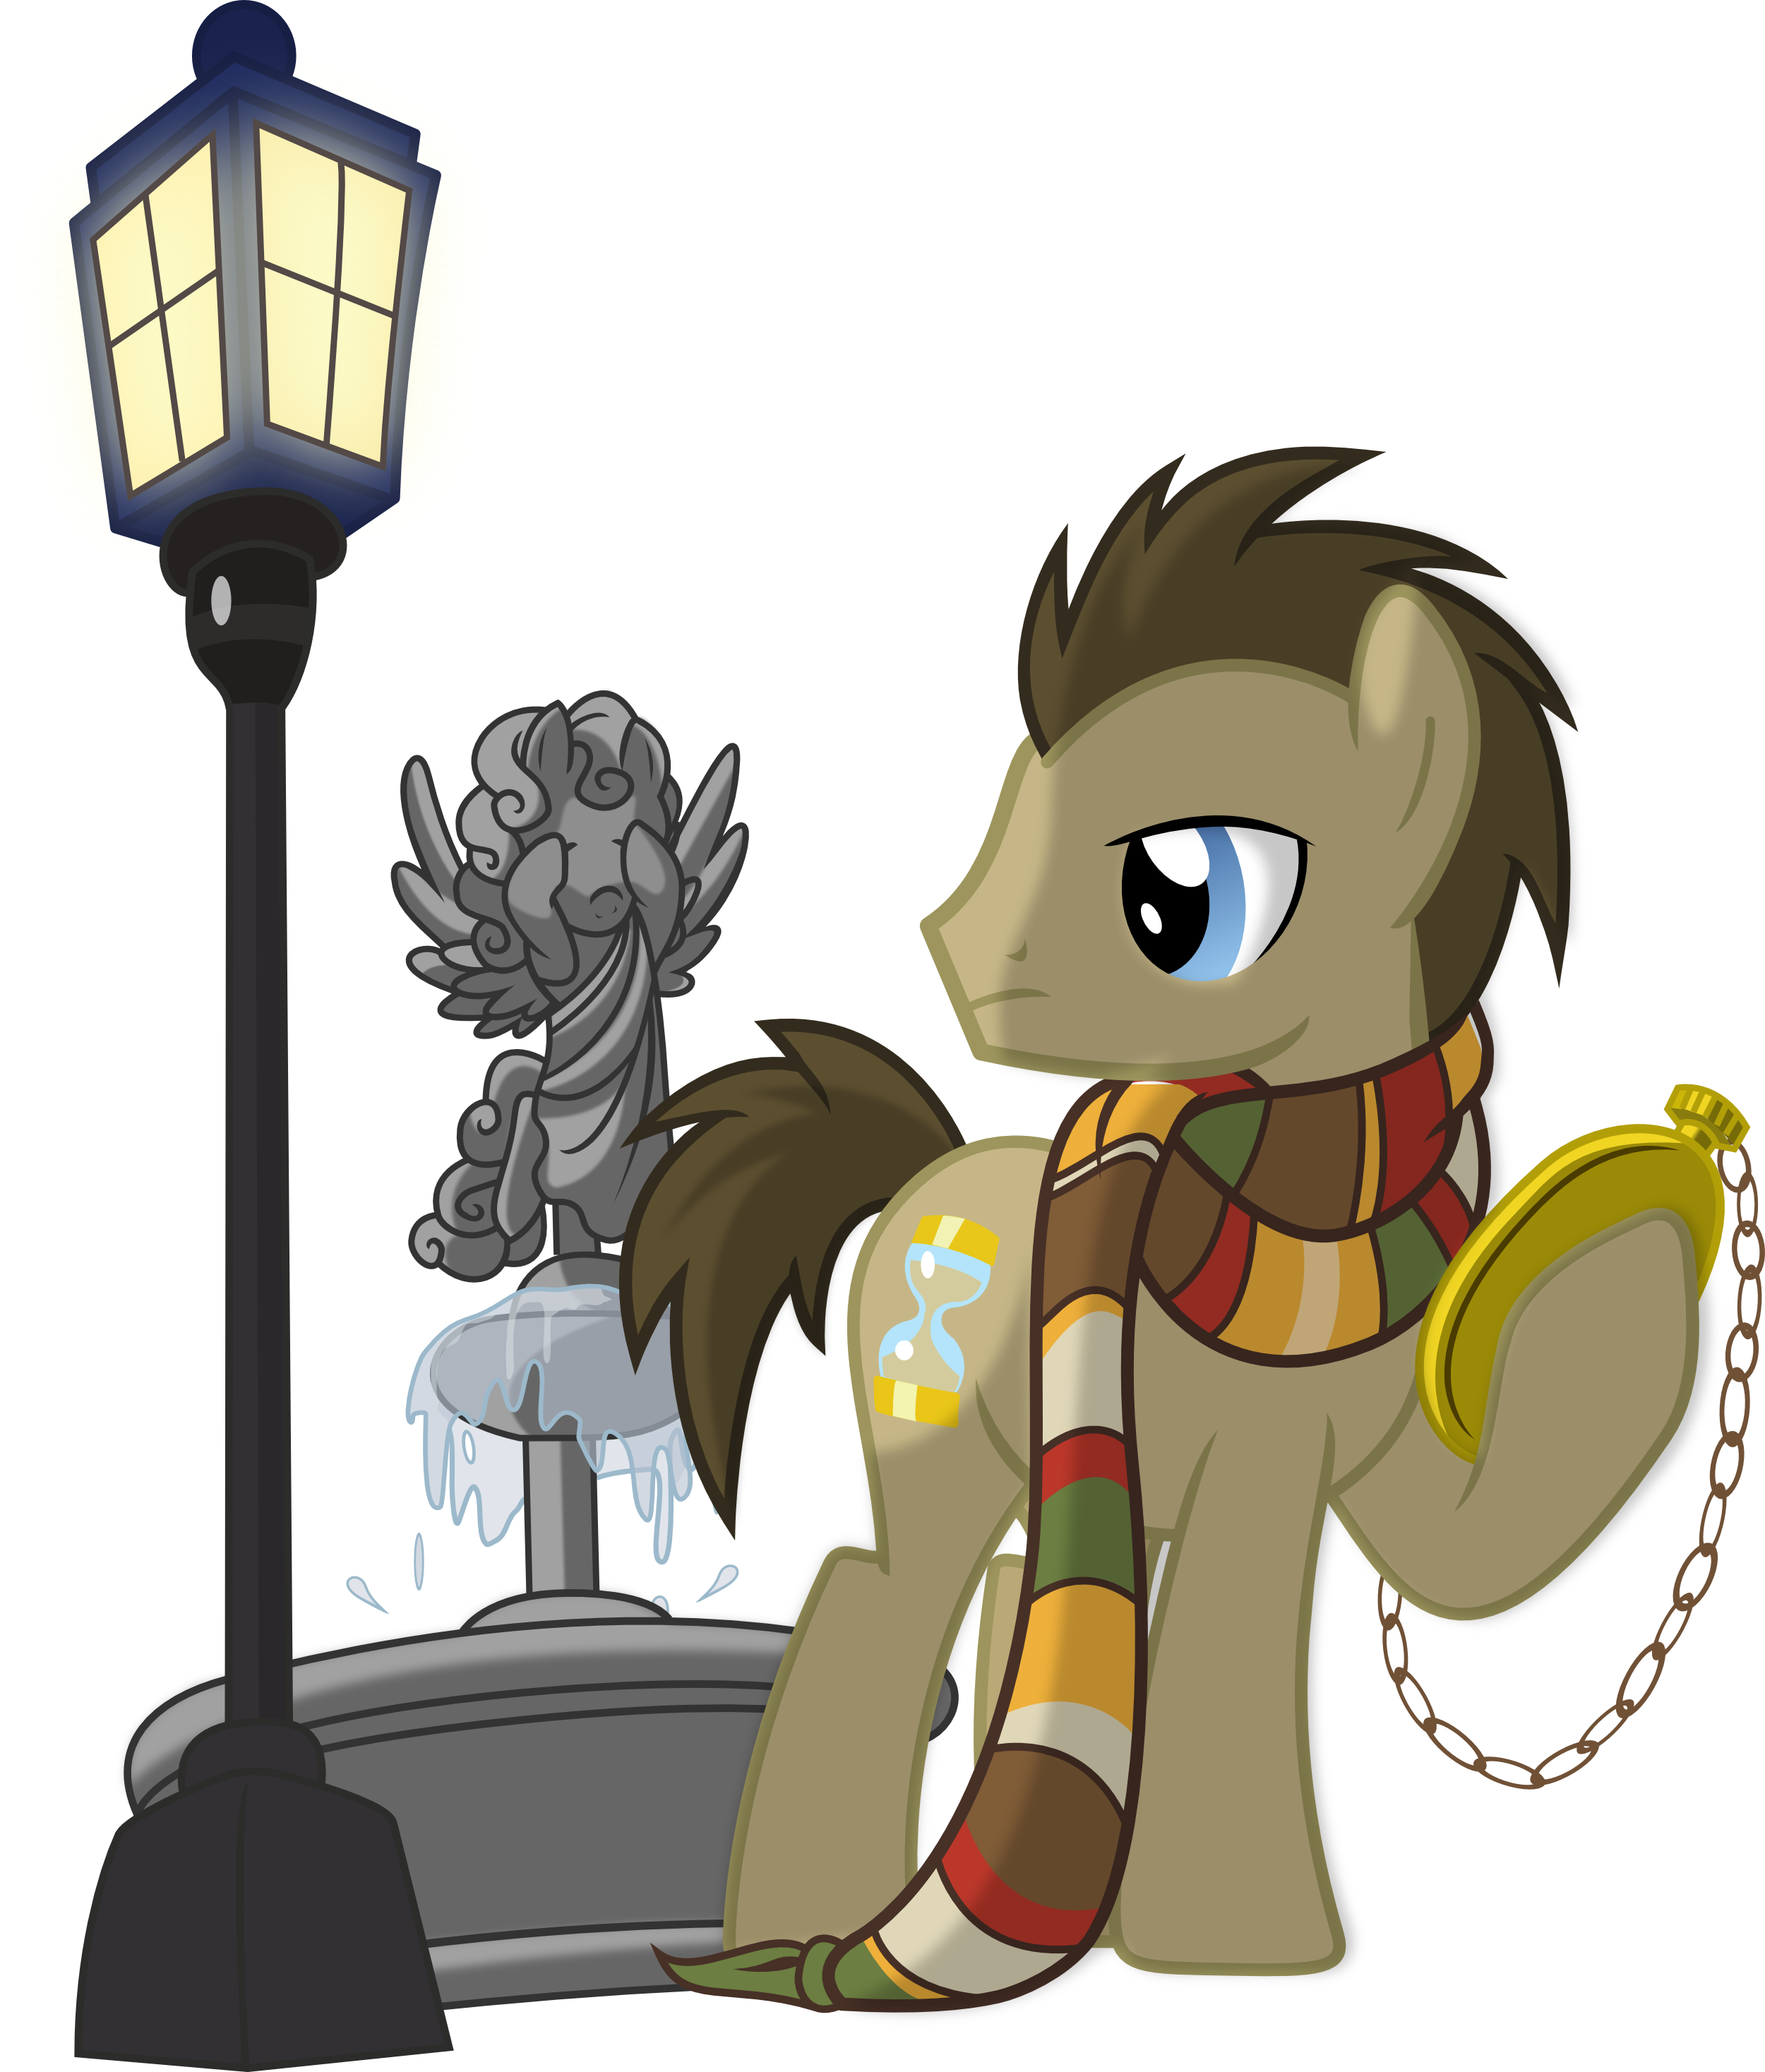 graphic royalty free Hooves and weeping angel. Vector doctor wallpaper